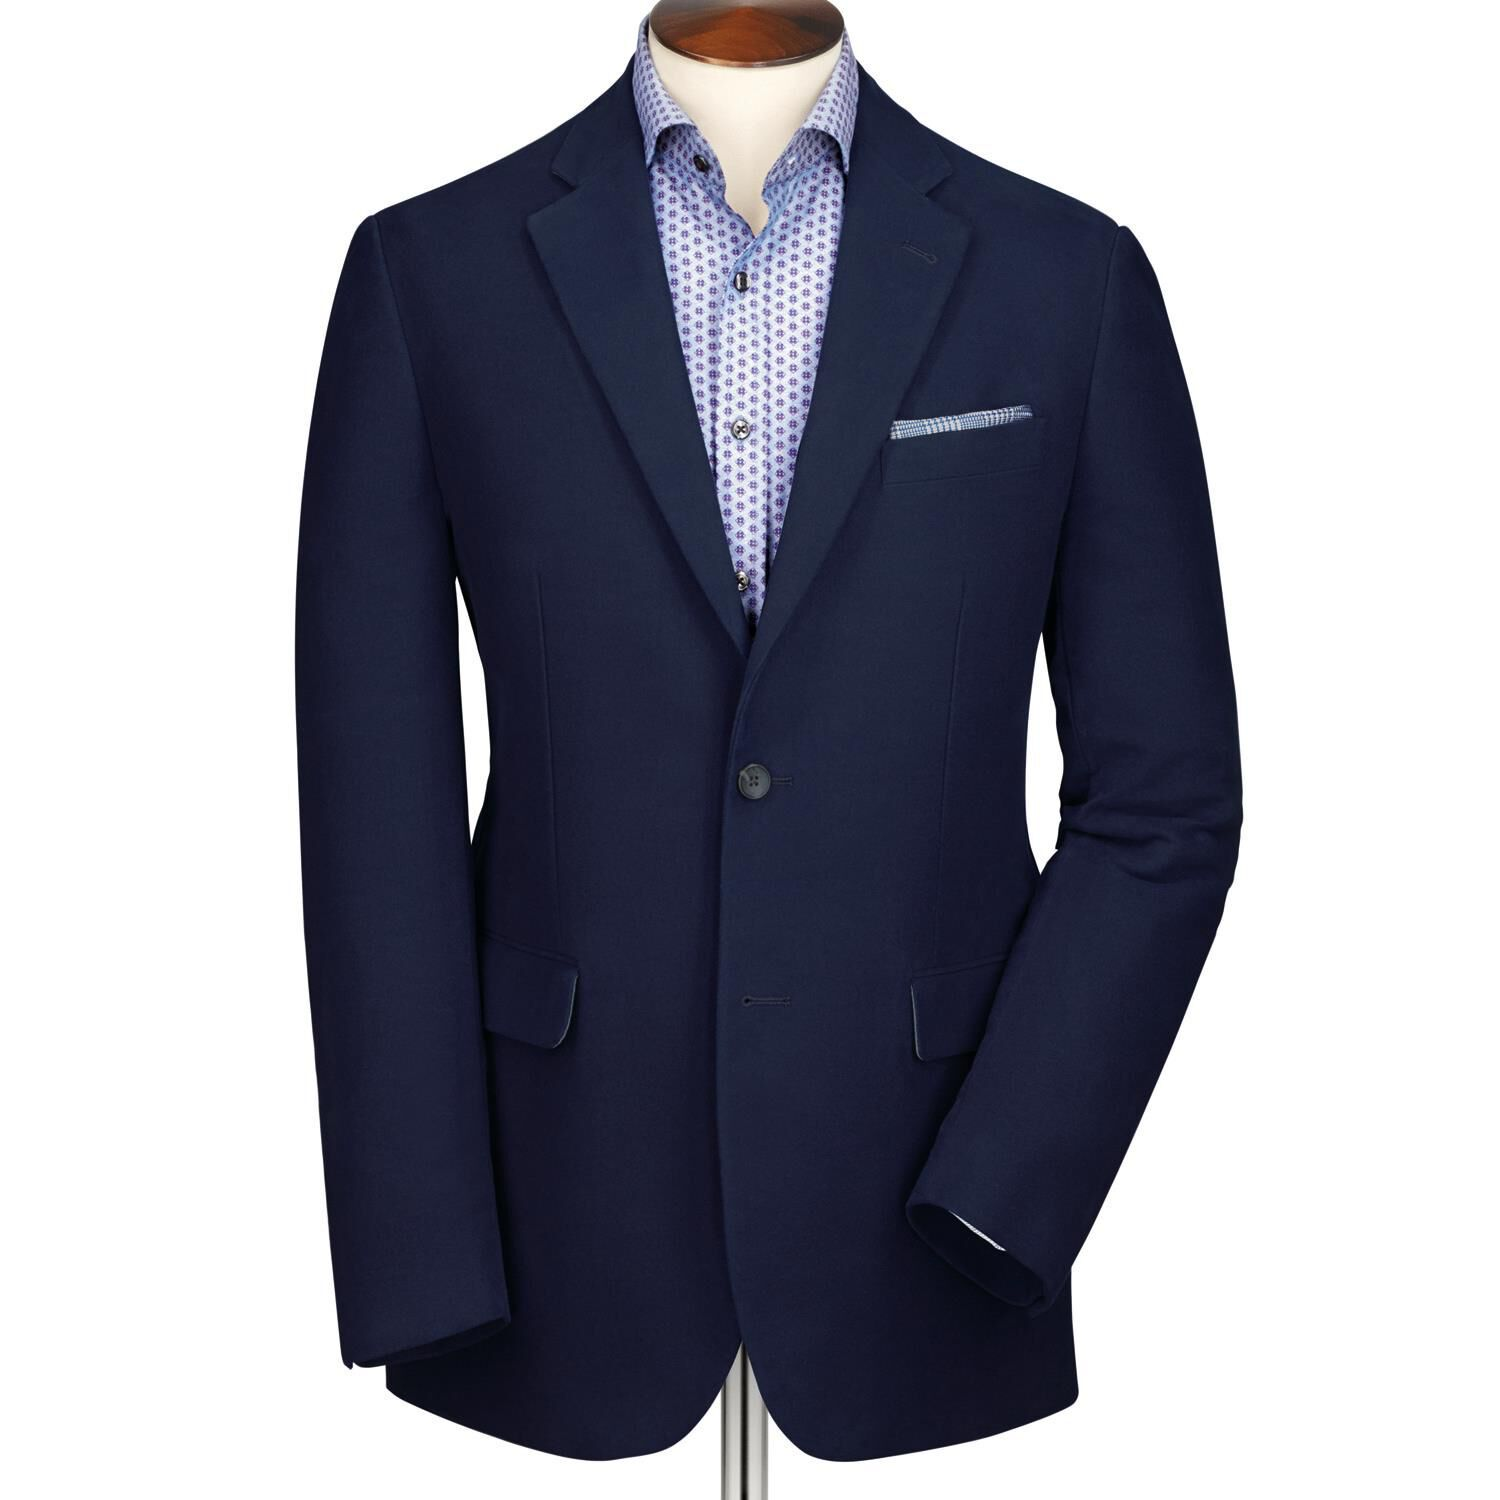 Navy Classic Fit Moleskin Unstructured Cotton Jacket Size 48 Regular by Charles Tyrwhitt